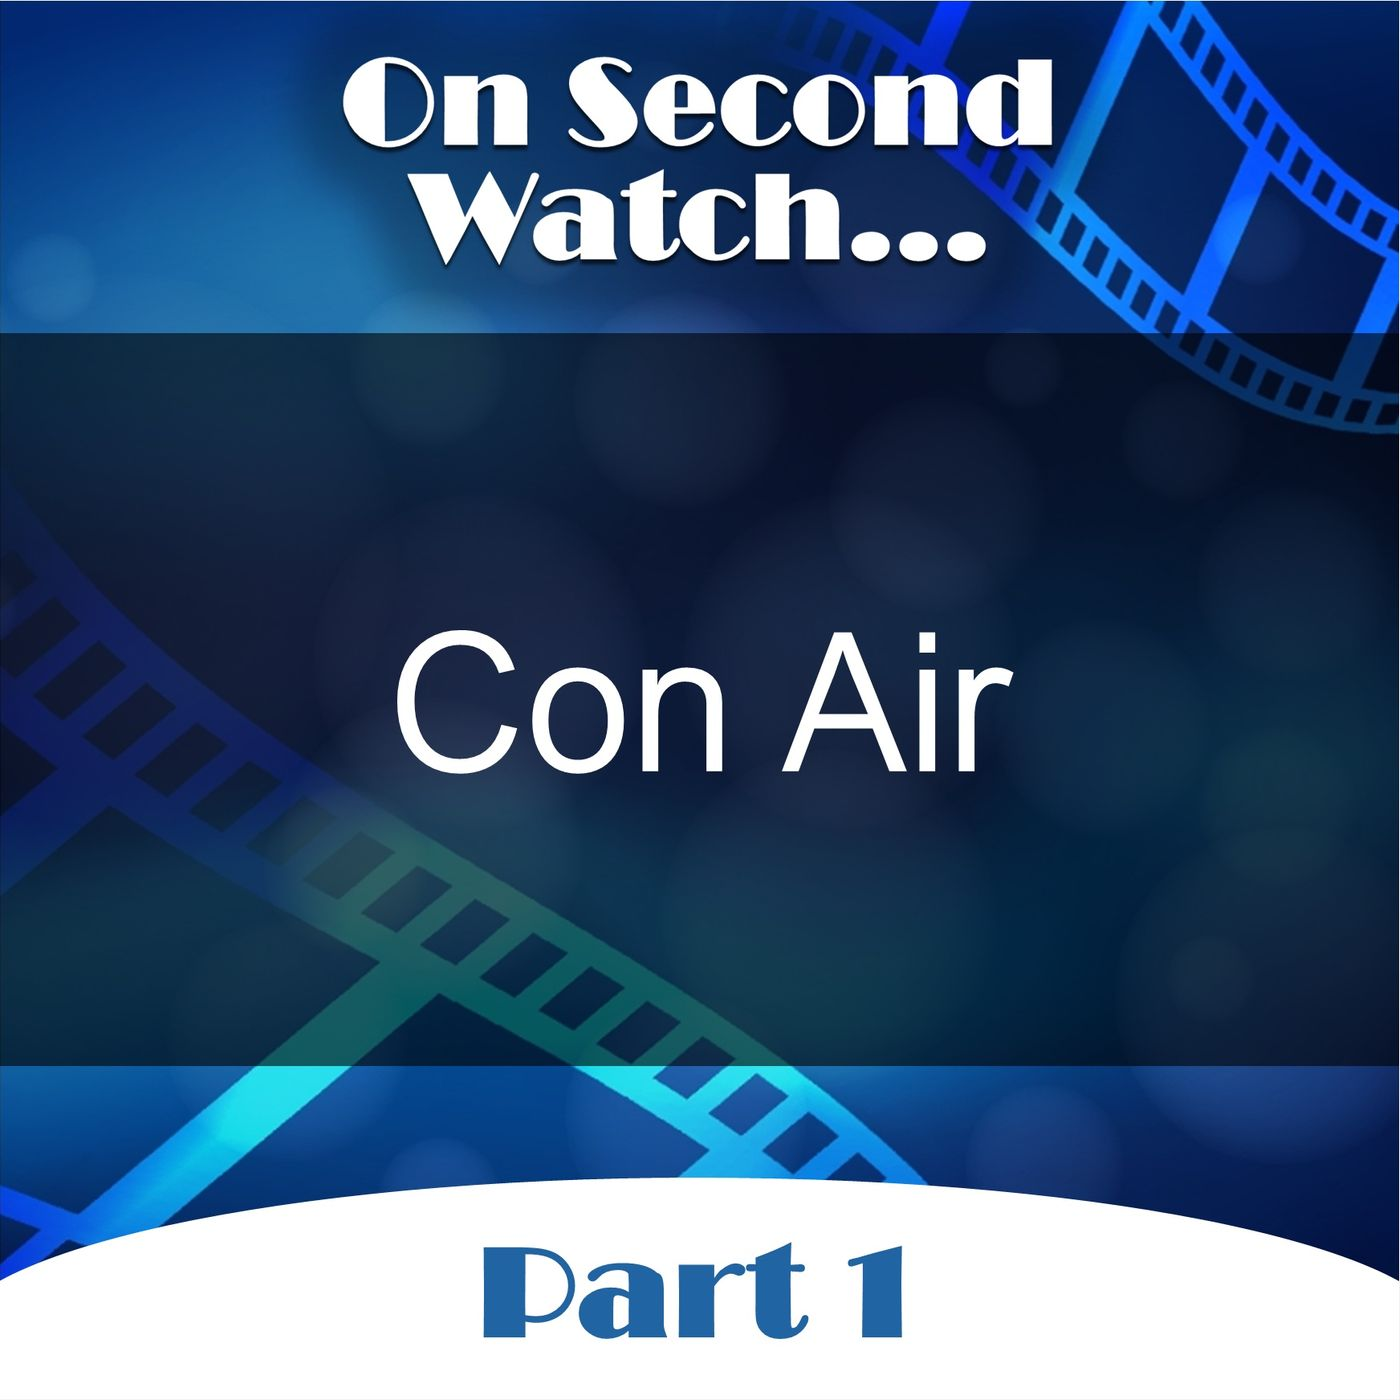 Con Air (1997) - Part 1, Nostalgia Review